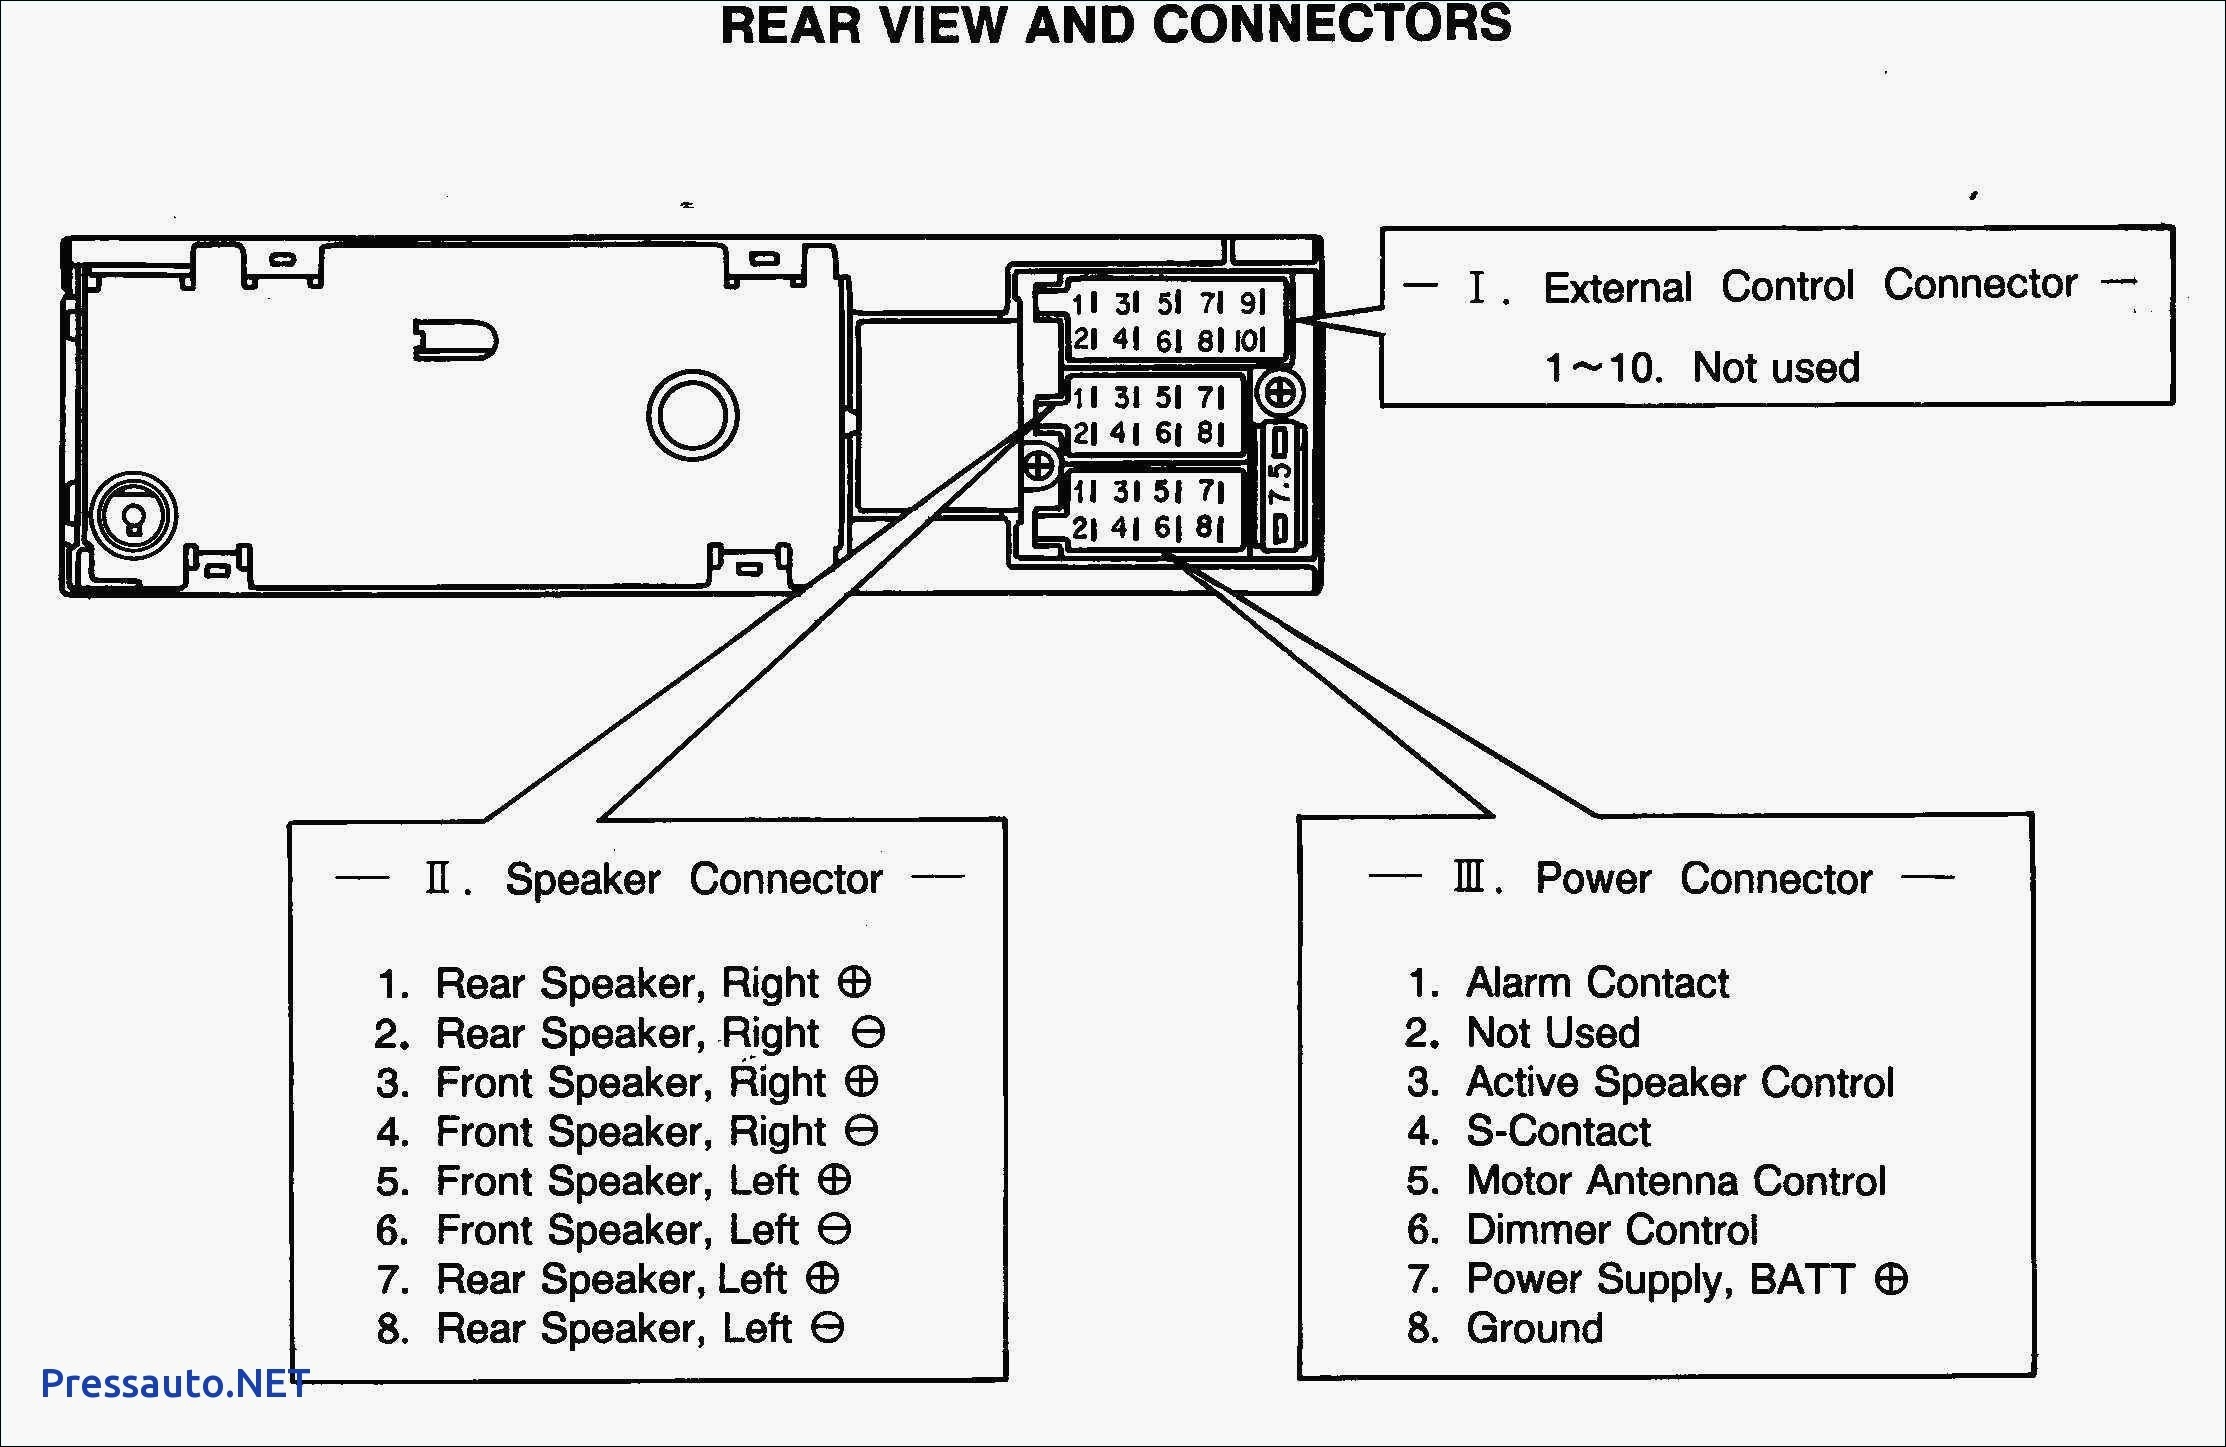 2000 vw jetta stereo wiring diagram Download-mk4 jetta radio wiring harness gallery wiring diagram rh visithoustontexas org mk4 jetta stereo wiring mk4 10-t